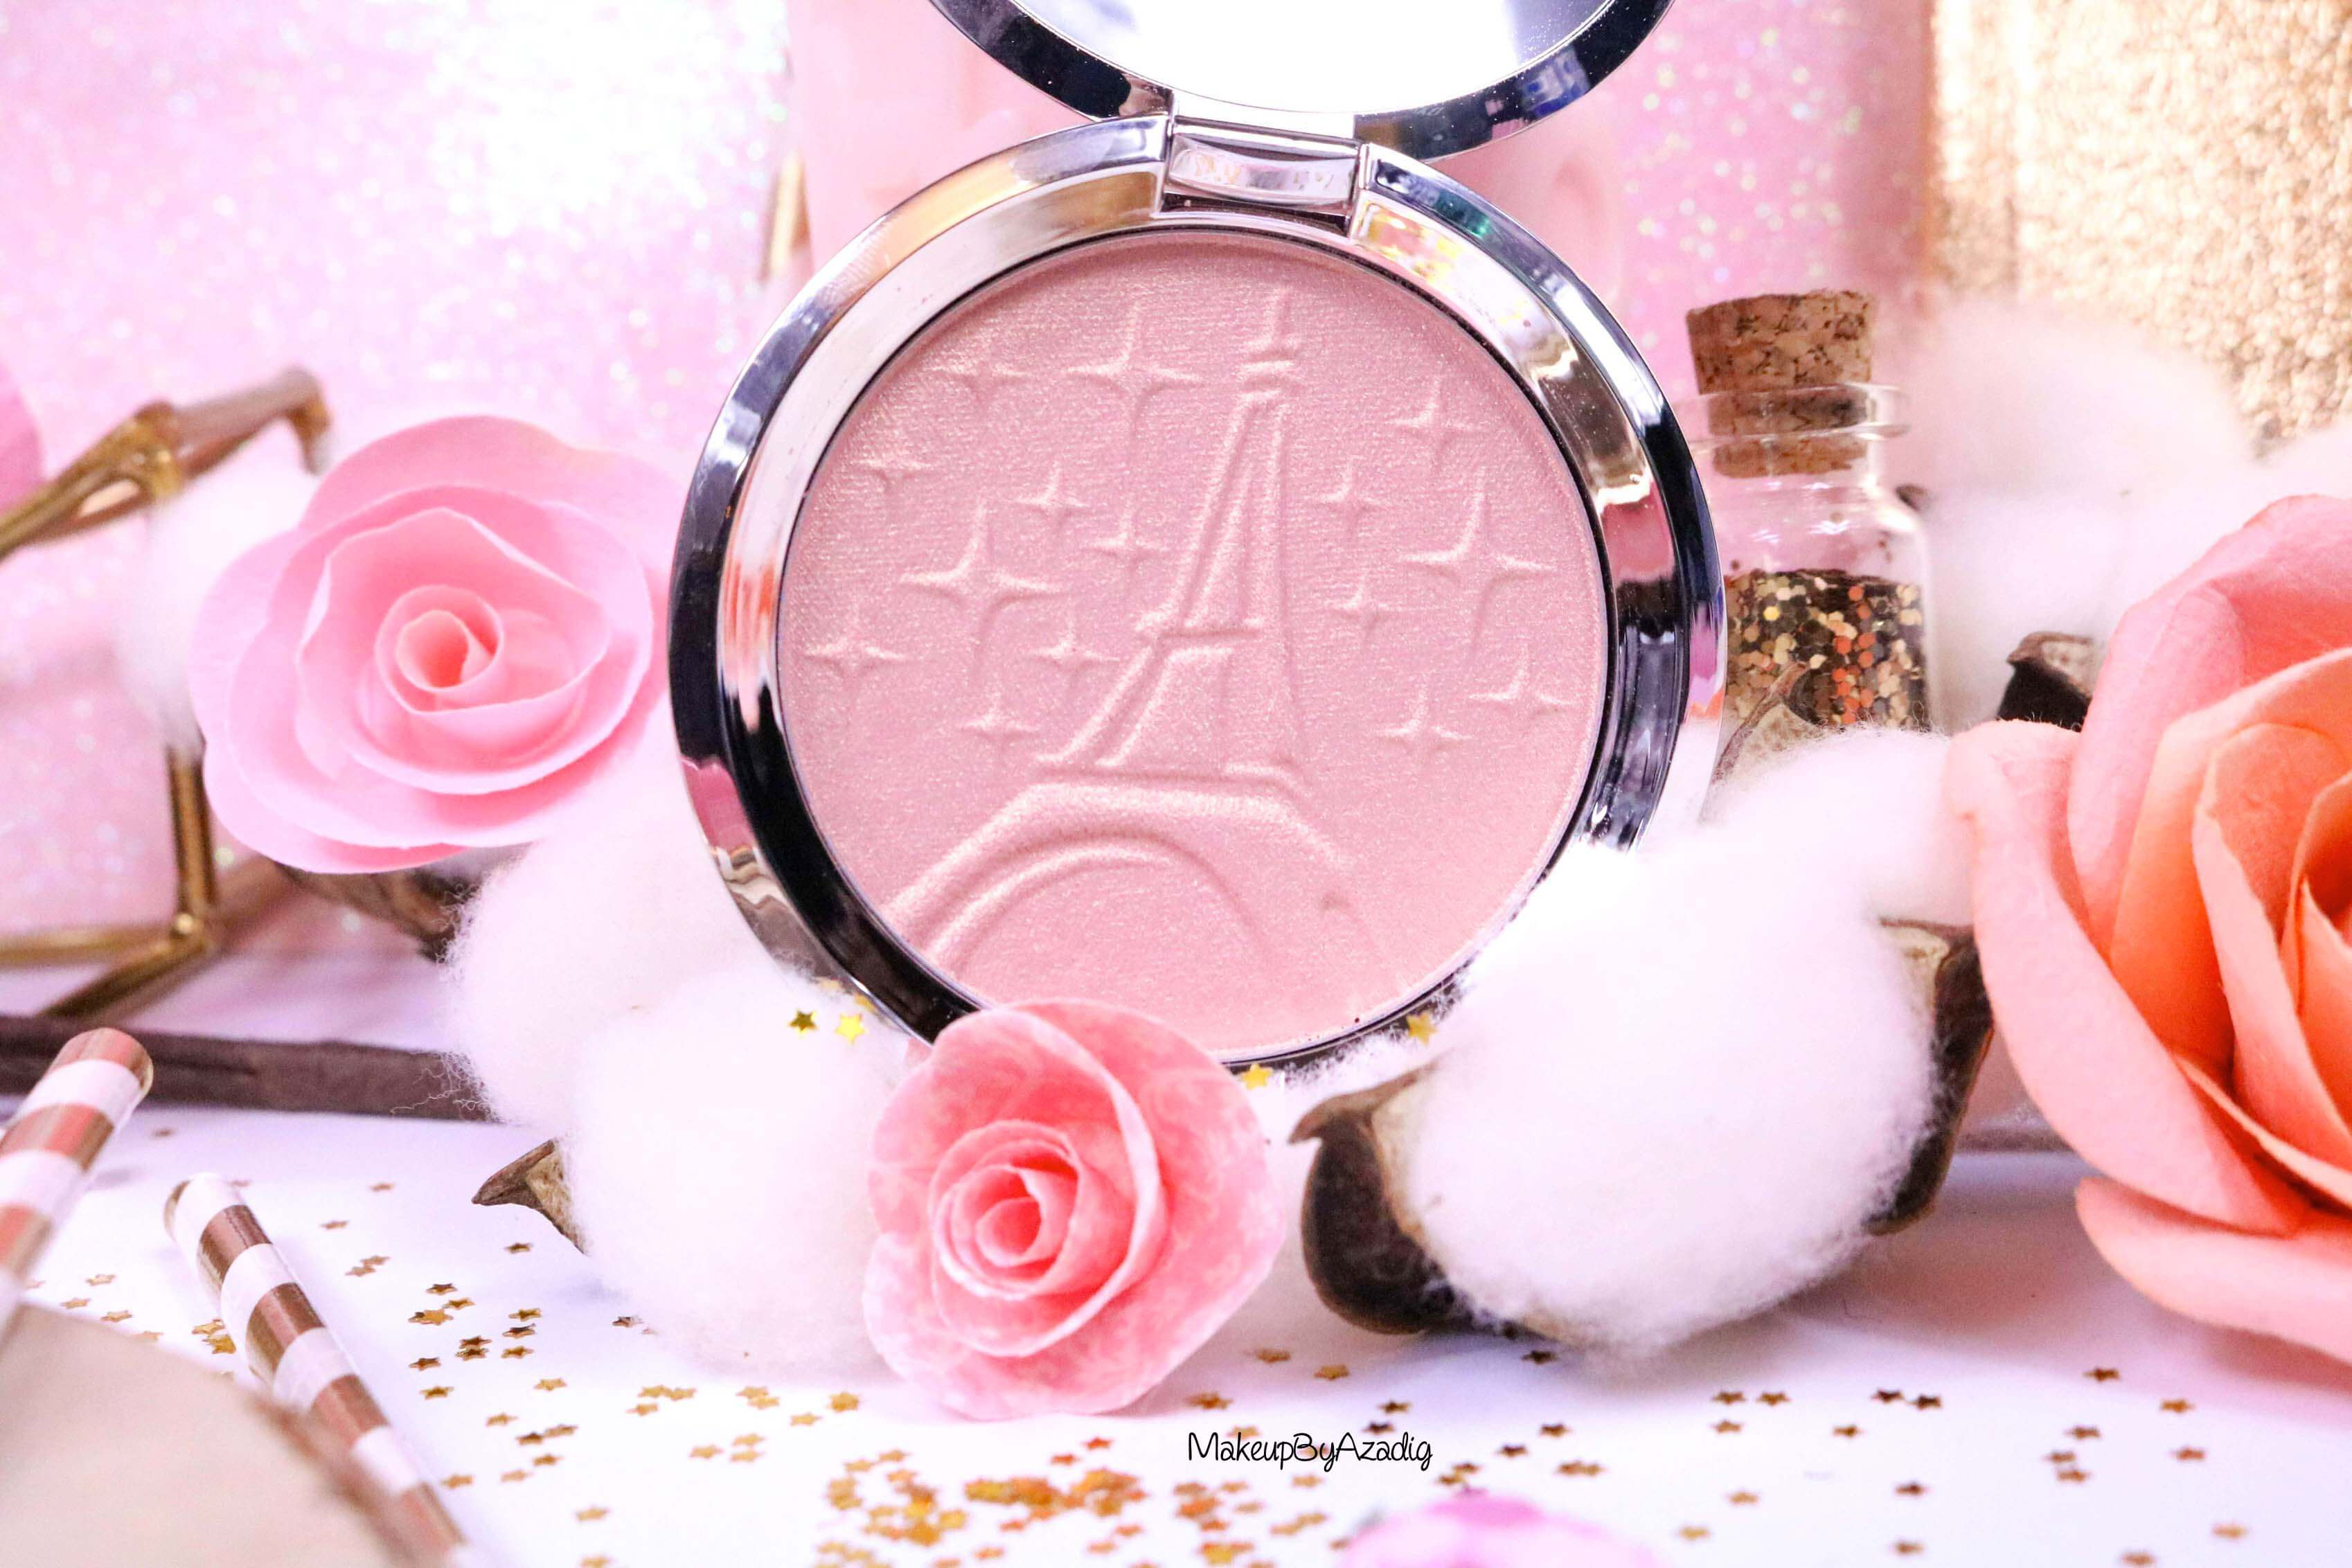 revue-highlighter-becca-sananas-parisian-lights-prix-avis-swatch-beccaxsananas-paris-youtuber-partenariat